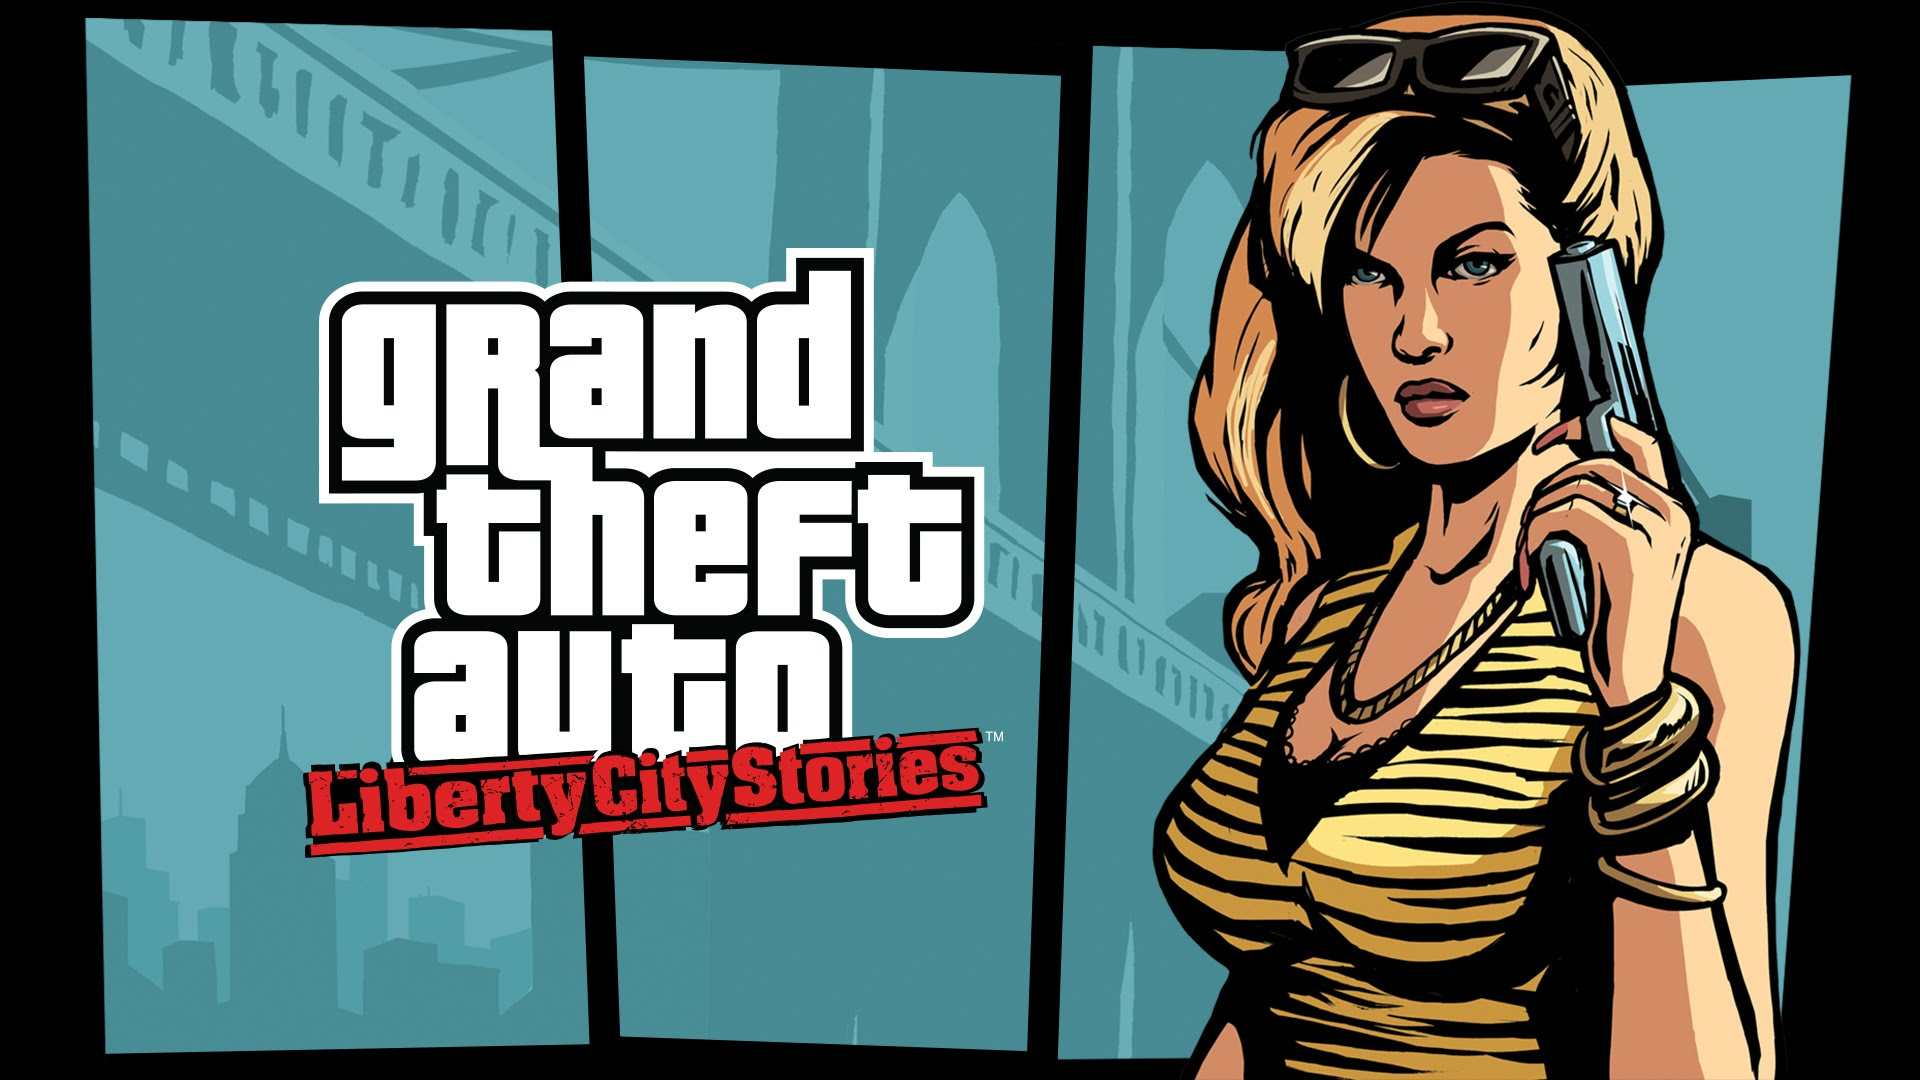 [Recensione] Grand Theft Auto: Liberty City Stories - In salute!